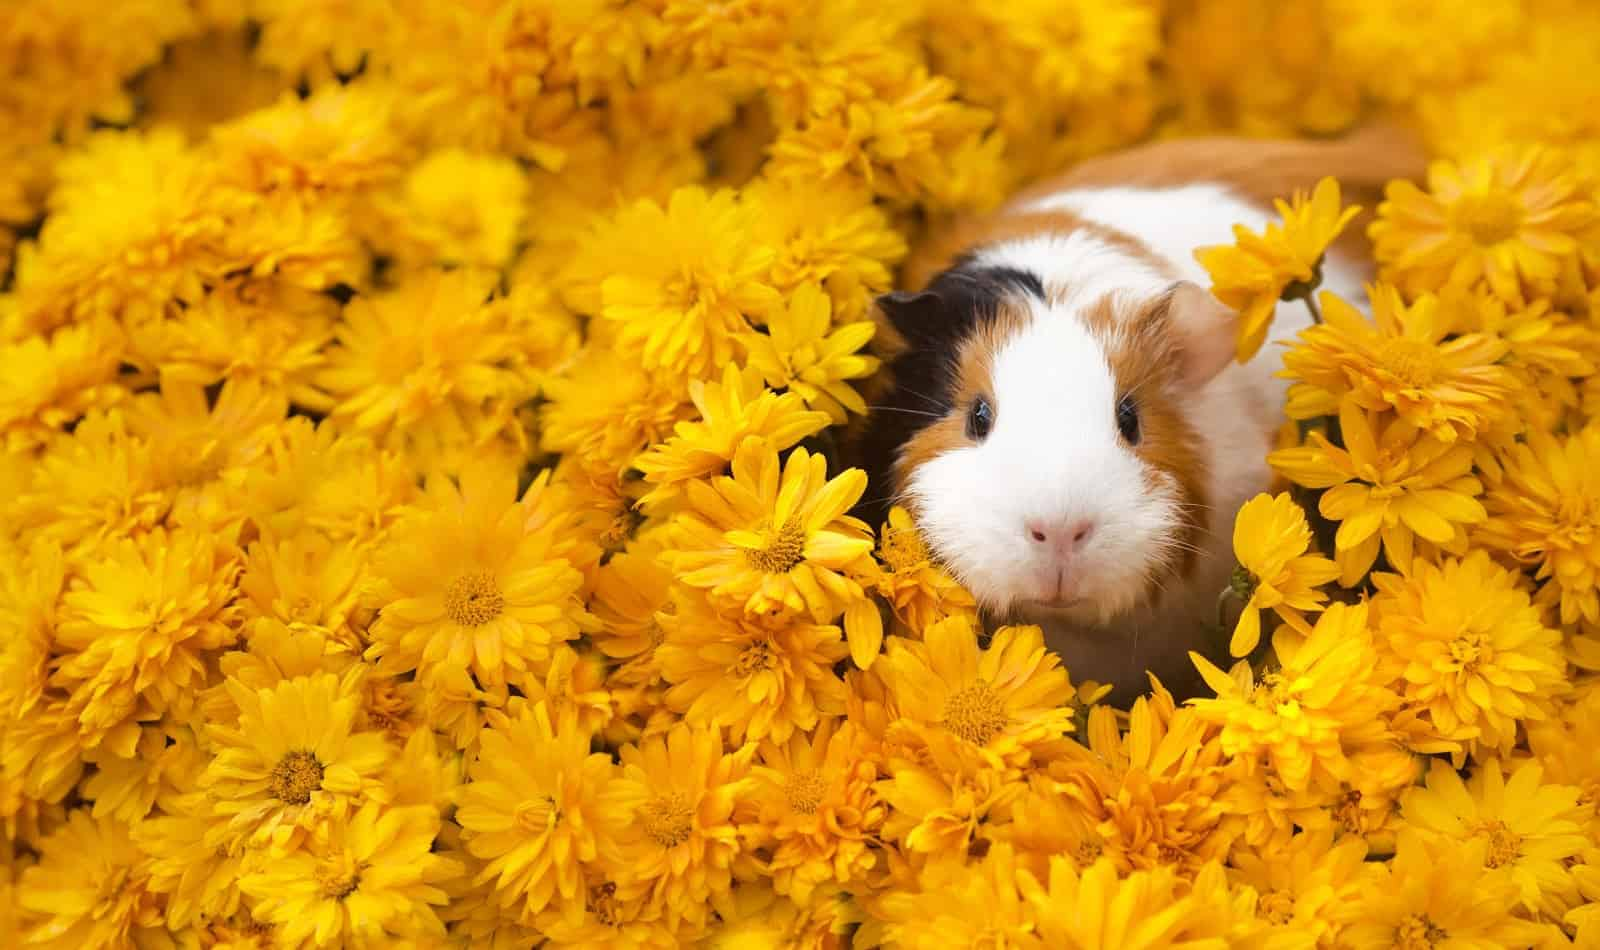 Want to know how to tell if your guinea pig is happy? Read on for the top 7 surefire signs of a blissful cavy!